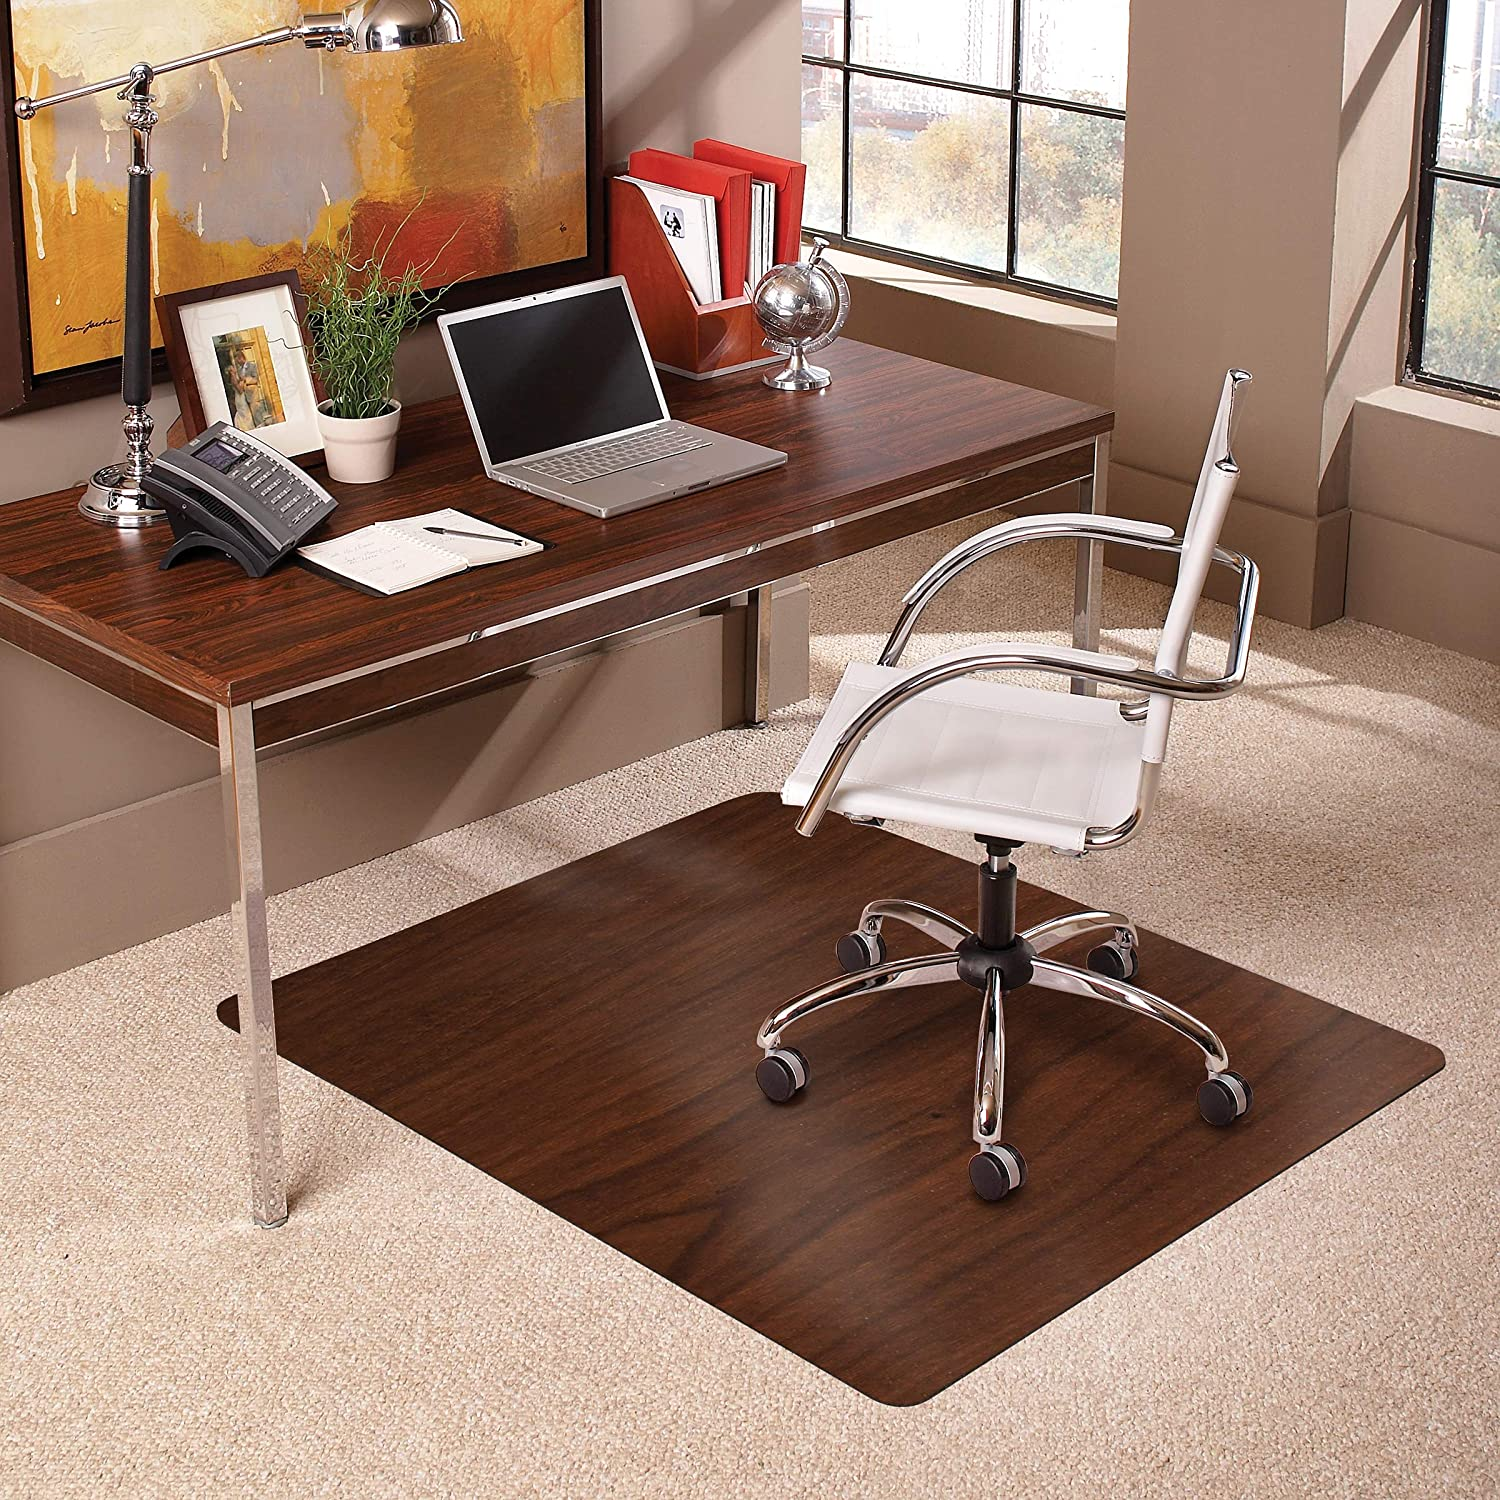 ES Robbins Trendsetter Medium Pile Carpet Chair Mat, Dark Cherry Woodgrain